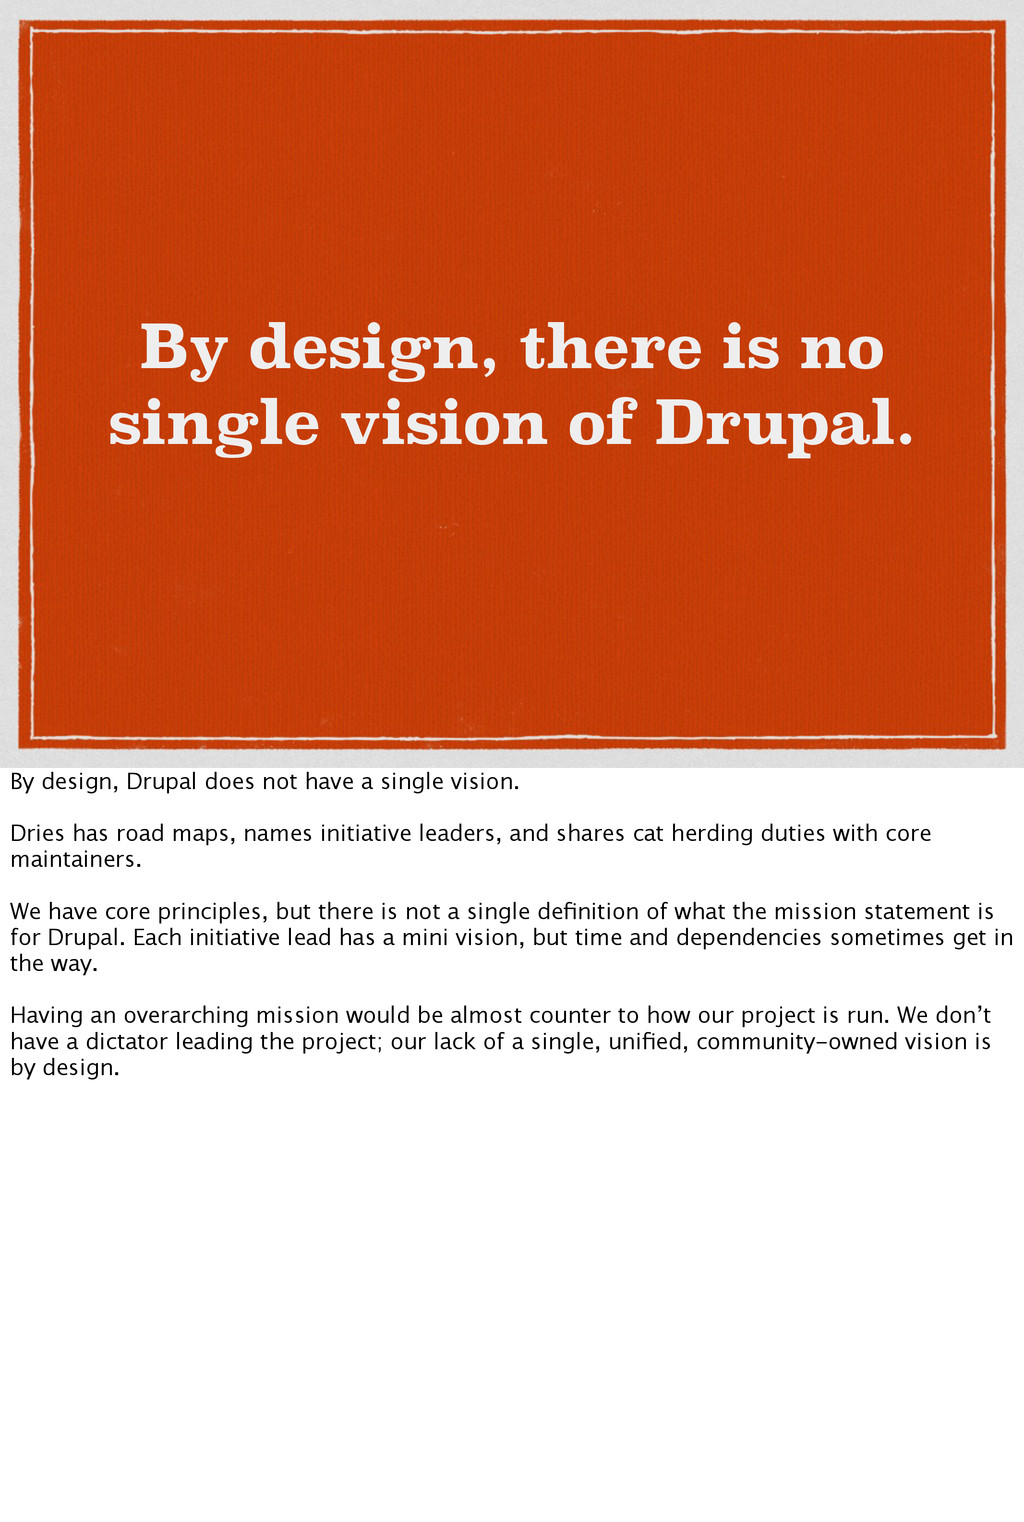 By design, there is no single vision of Drupal....